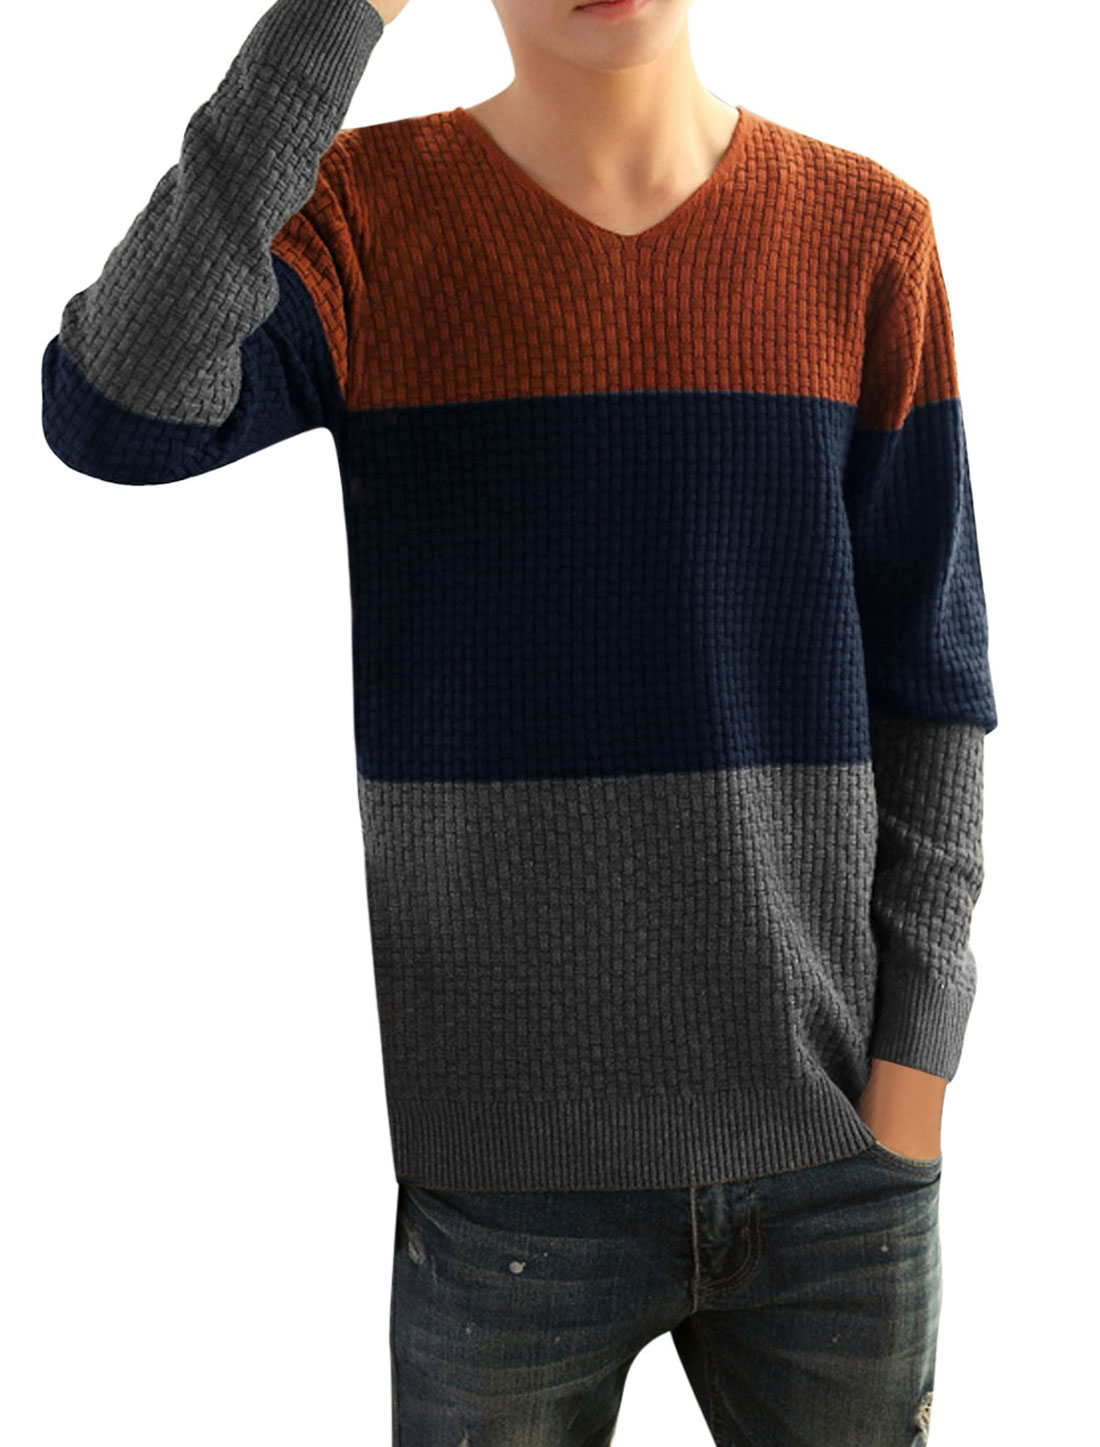 Men Contrast Color Ribbed Cuff w Hem Casual Knit Shirt Brick Red S